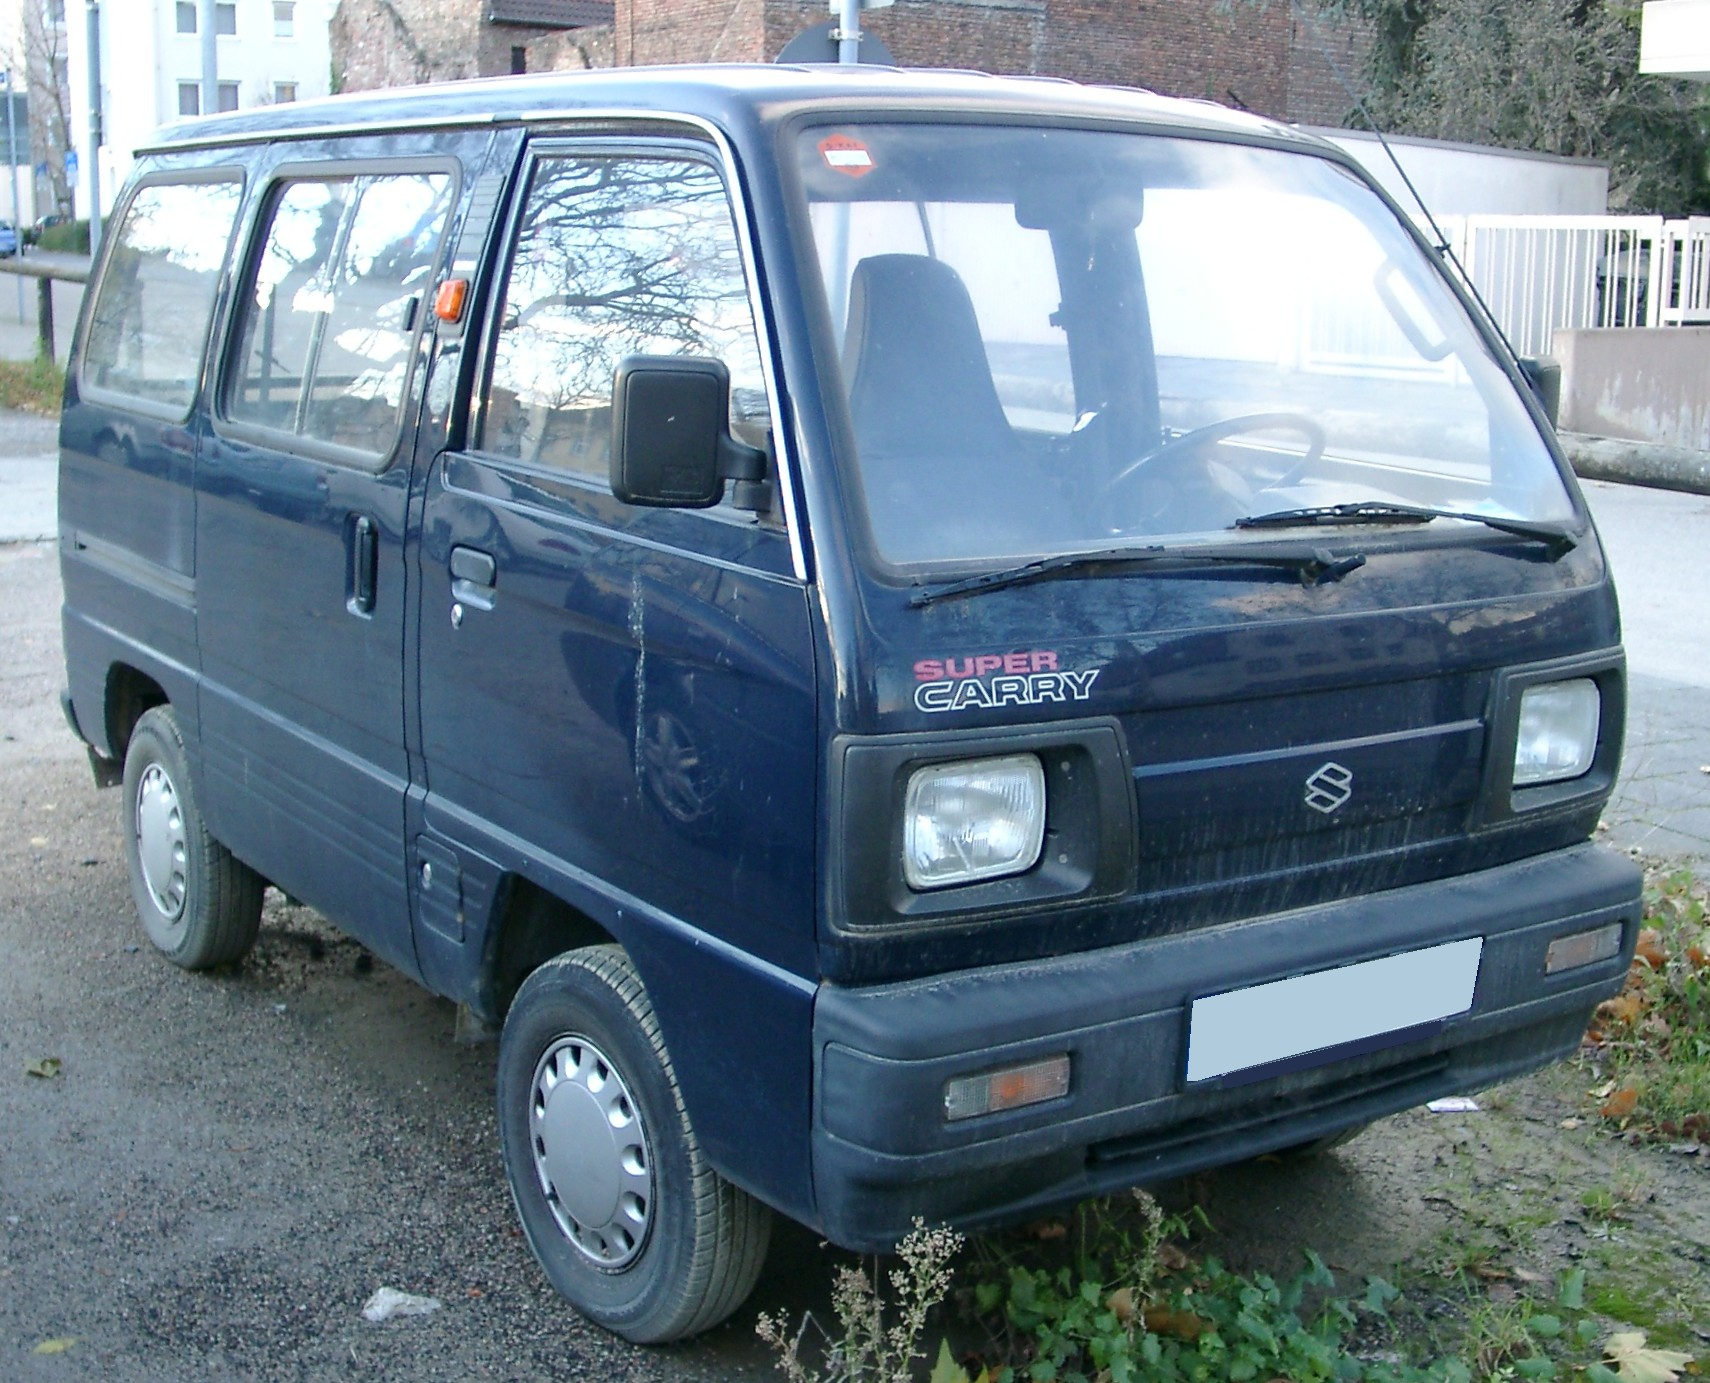 Suzuki supercarry photo - 4